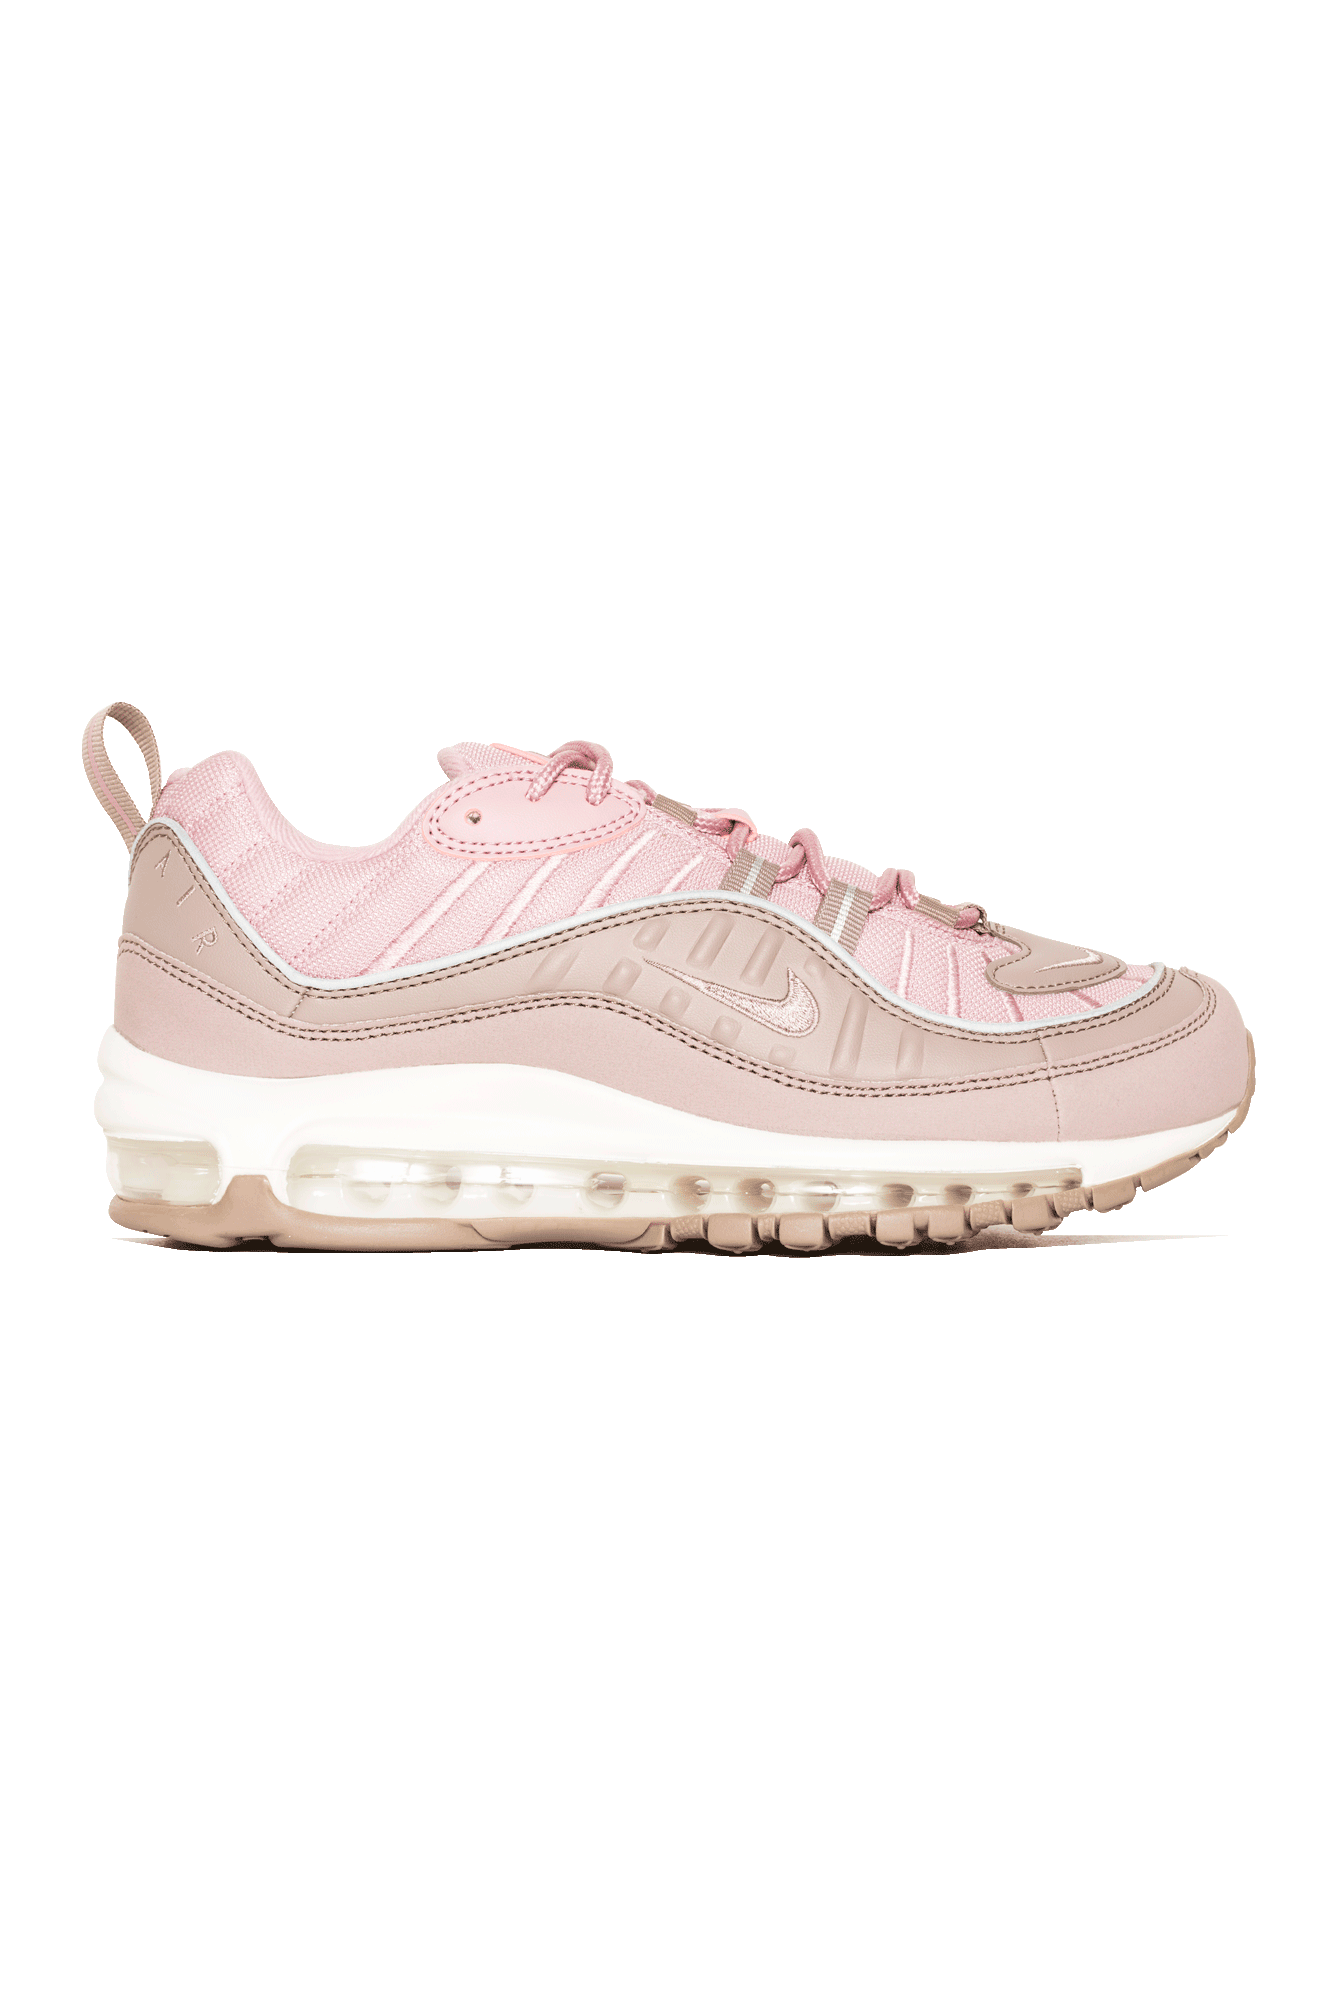 Sneakers Nike Air Max 98 Pink - One Block Down